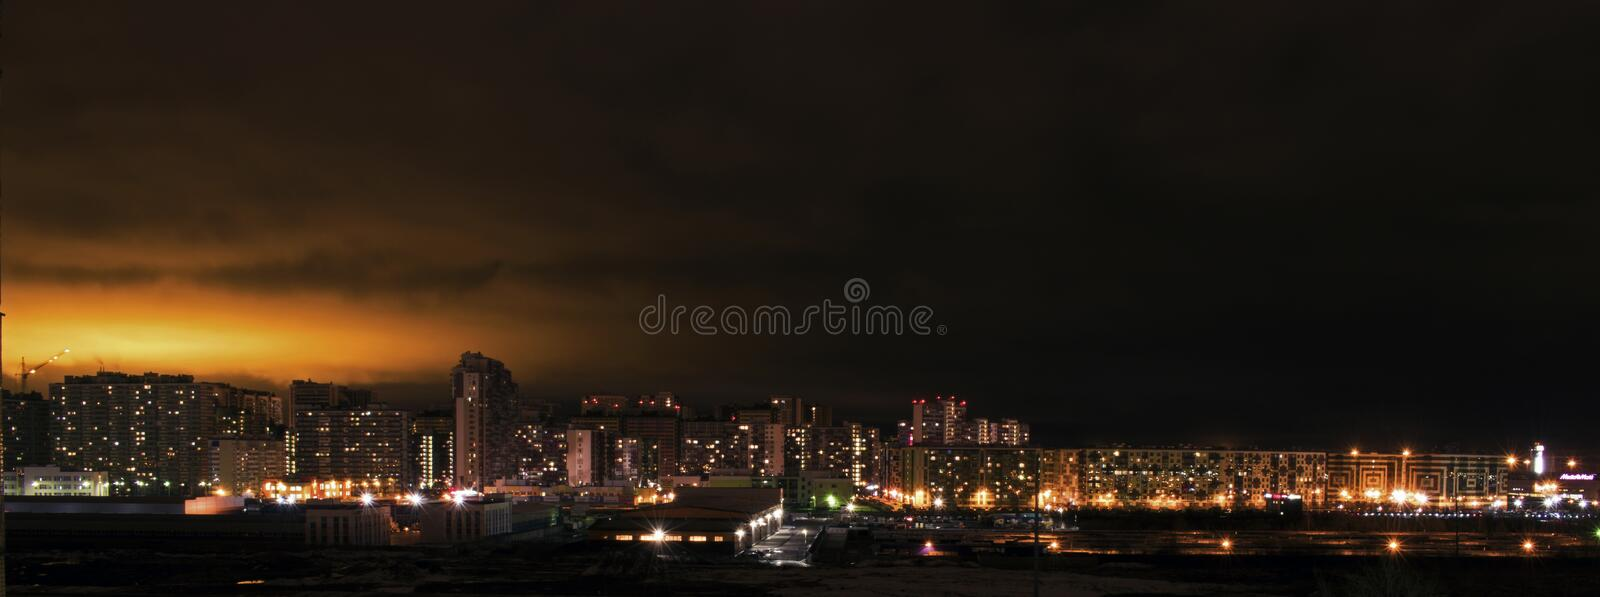 Night scene in outskirts royalty free stock images